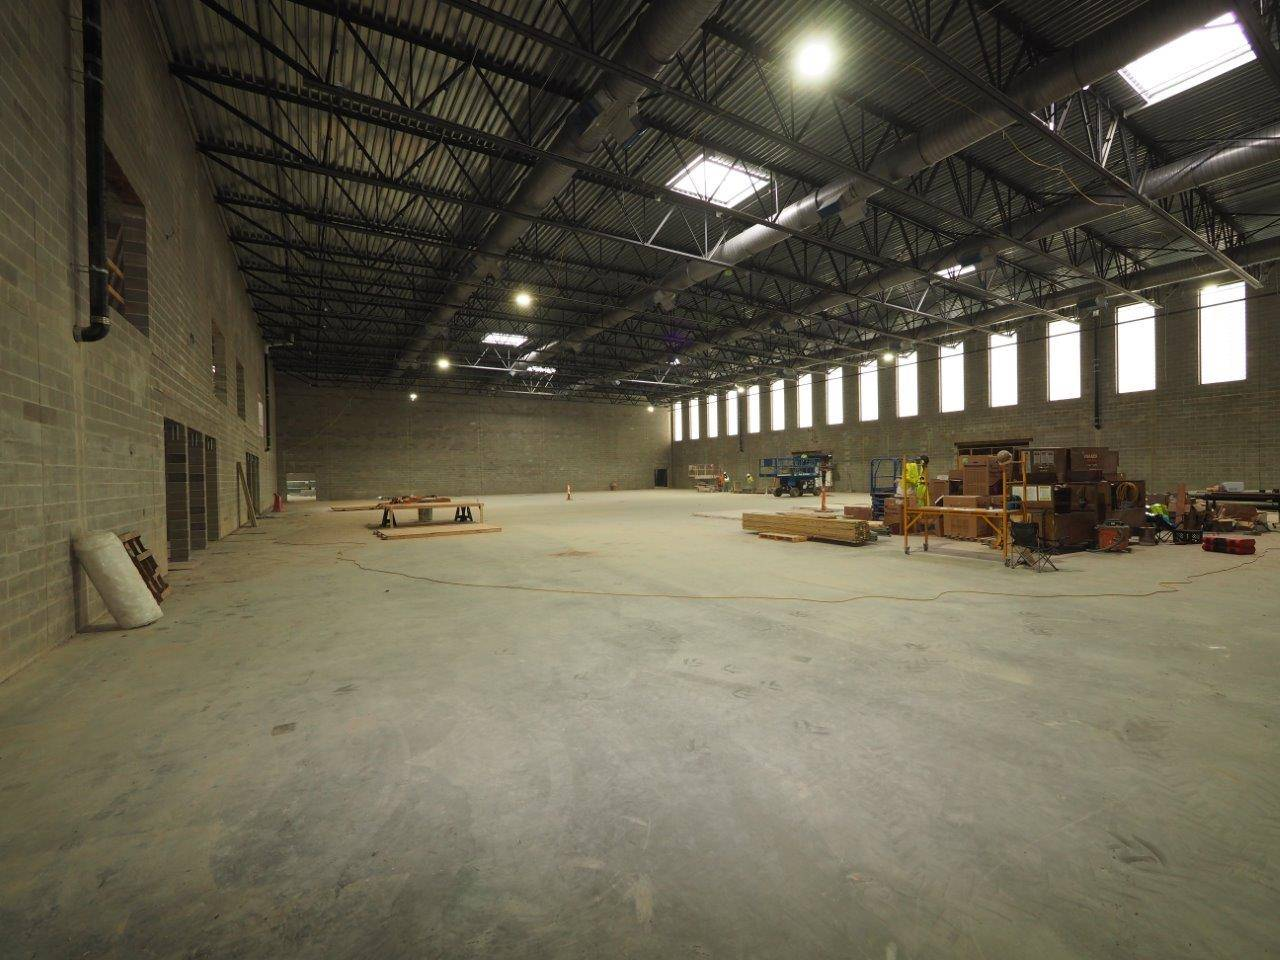 Inside the competition gymnasium at the new high school